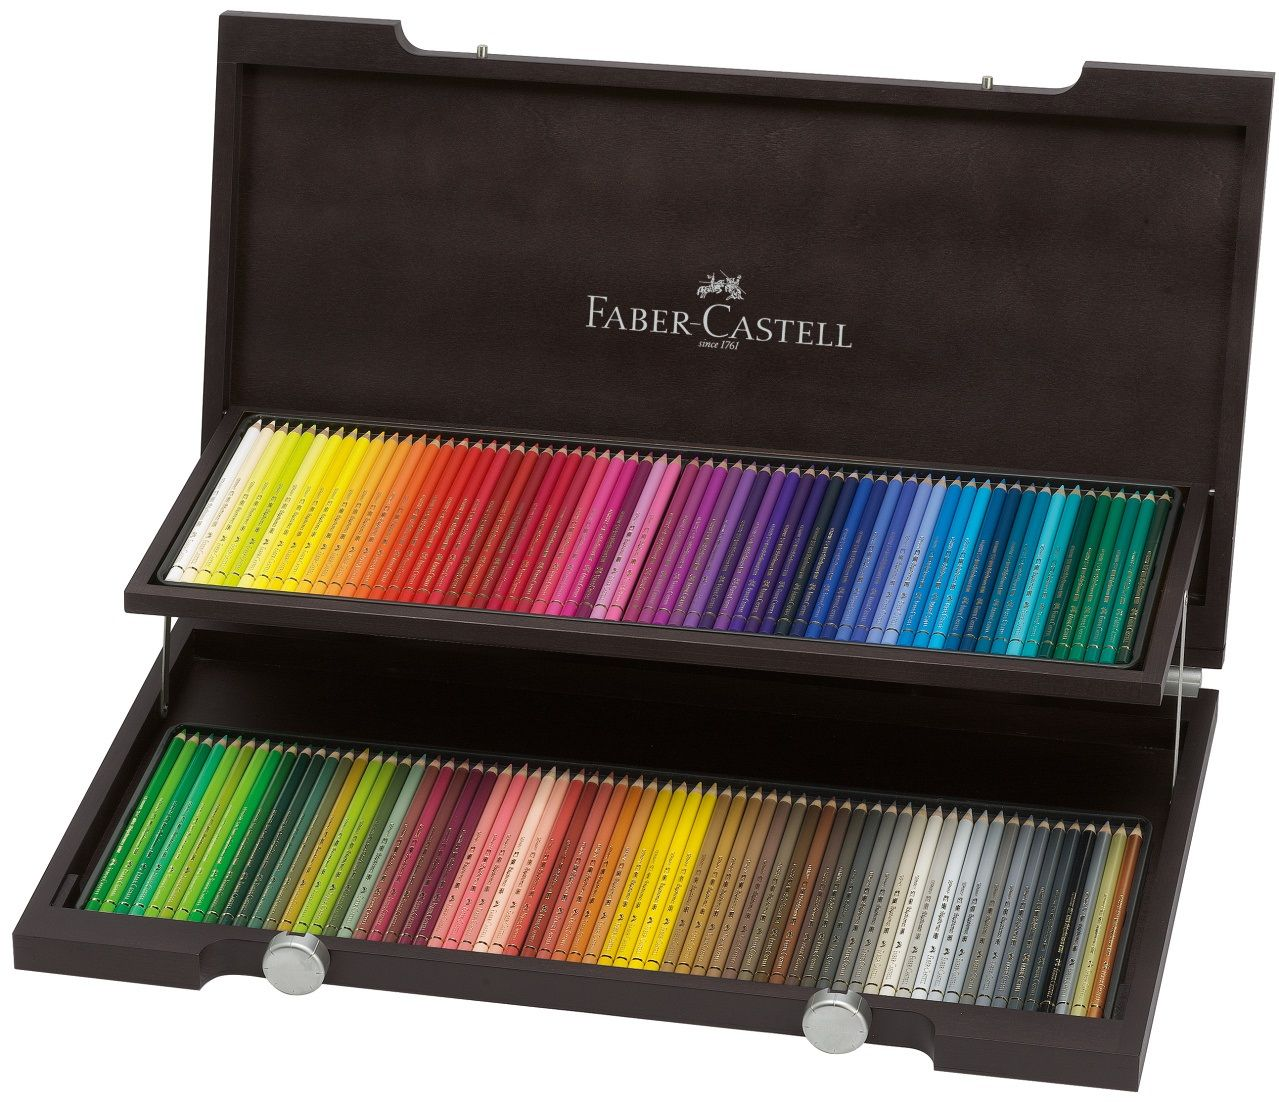 Faber Castell Colored Pencils 3 Faber Castell Artist Pencils